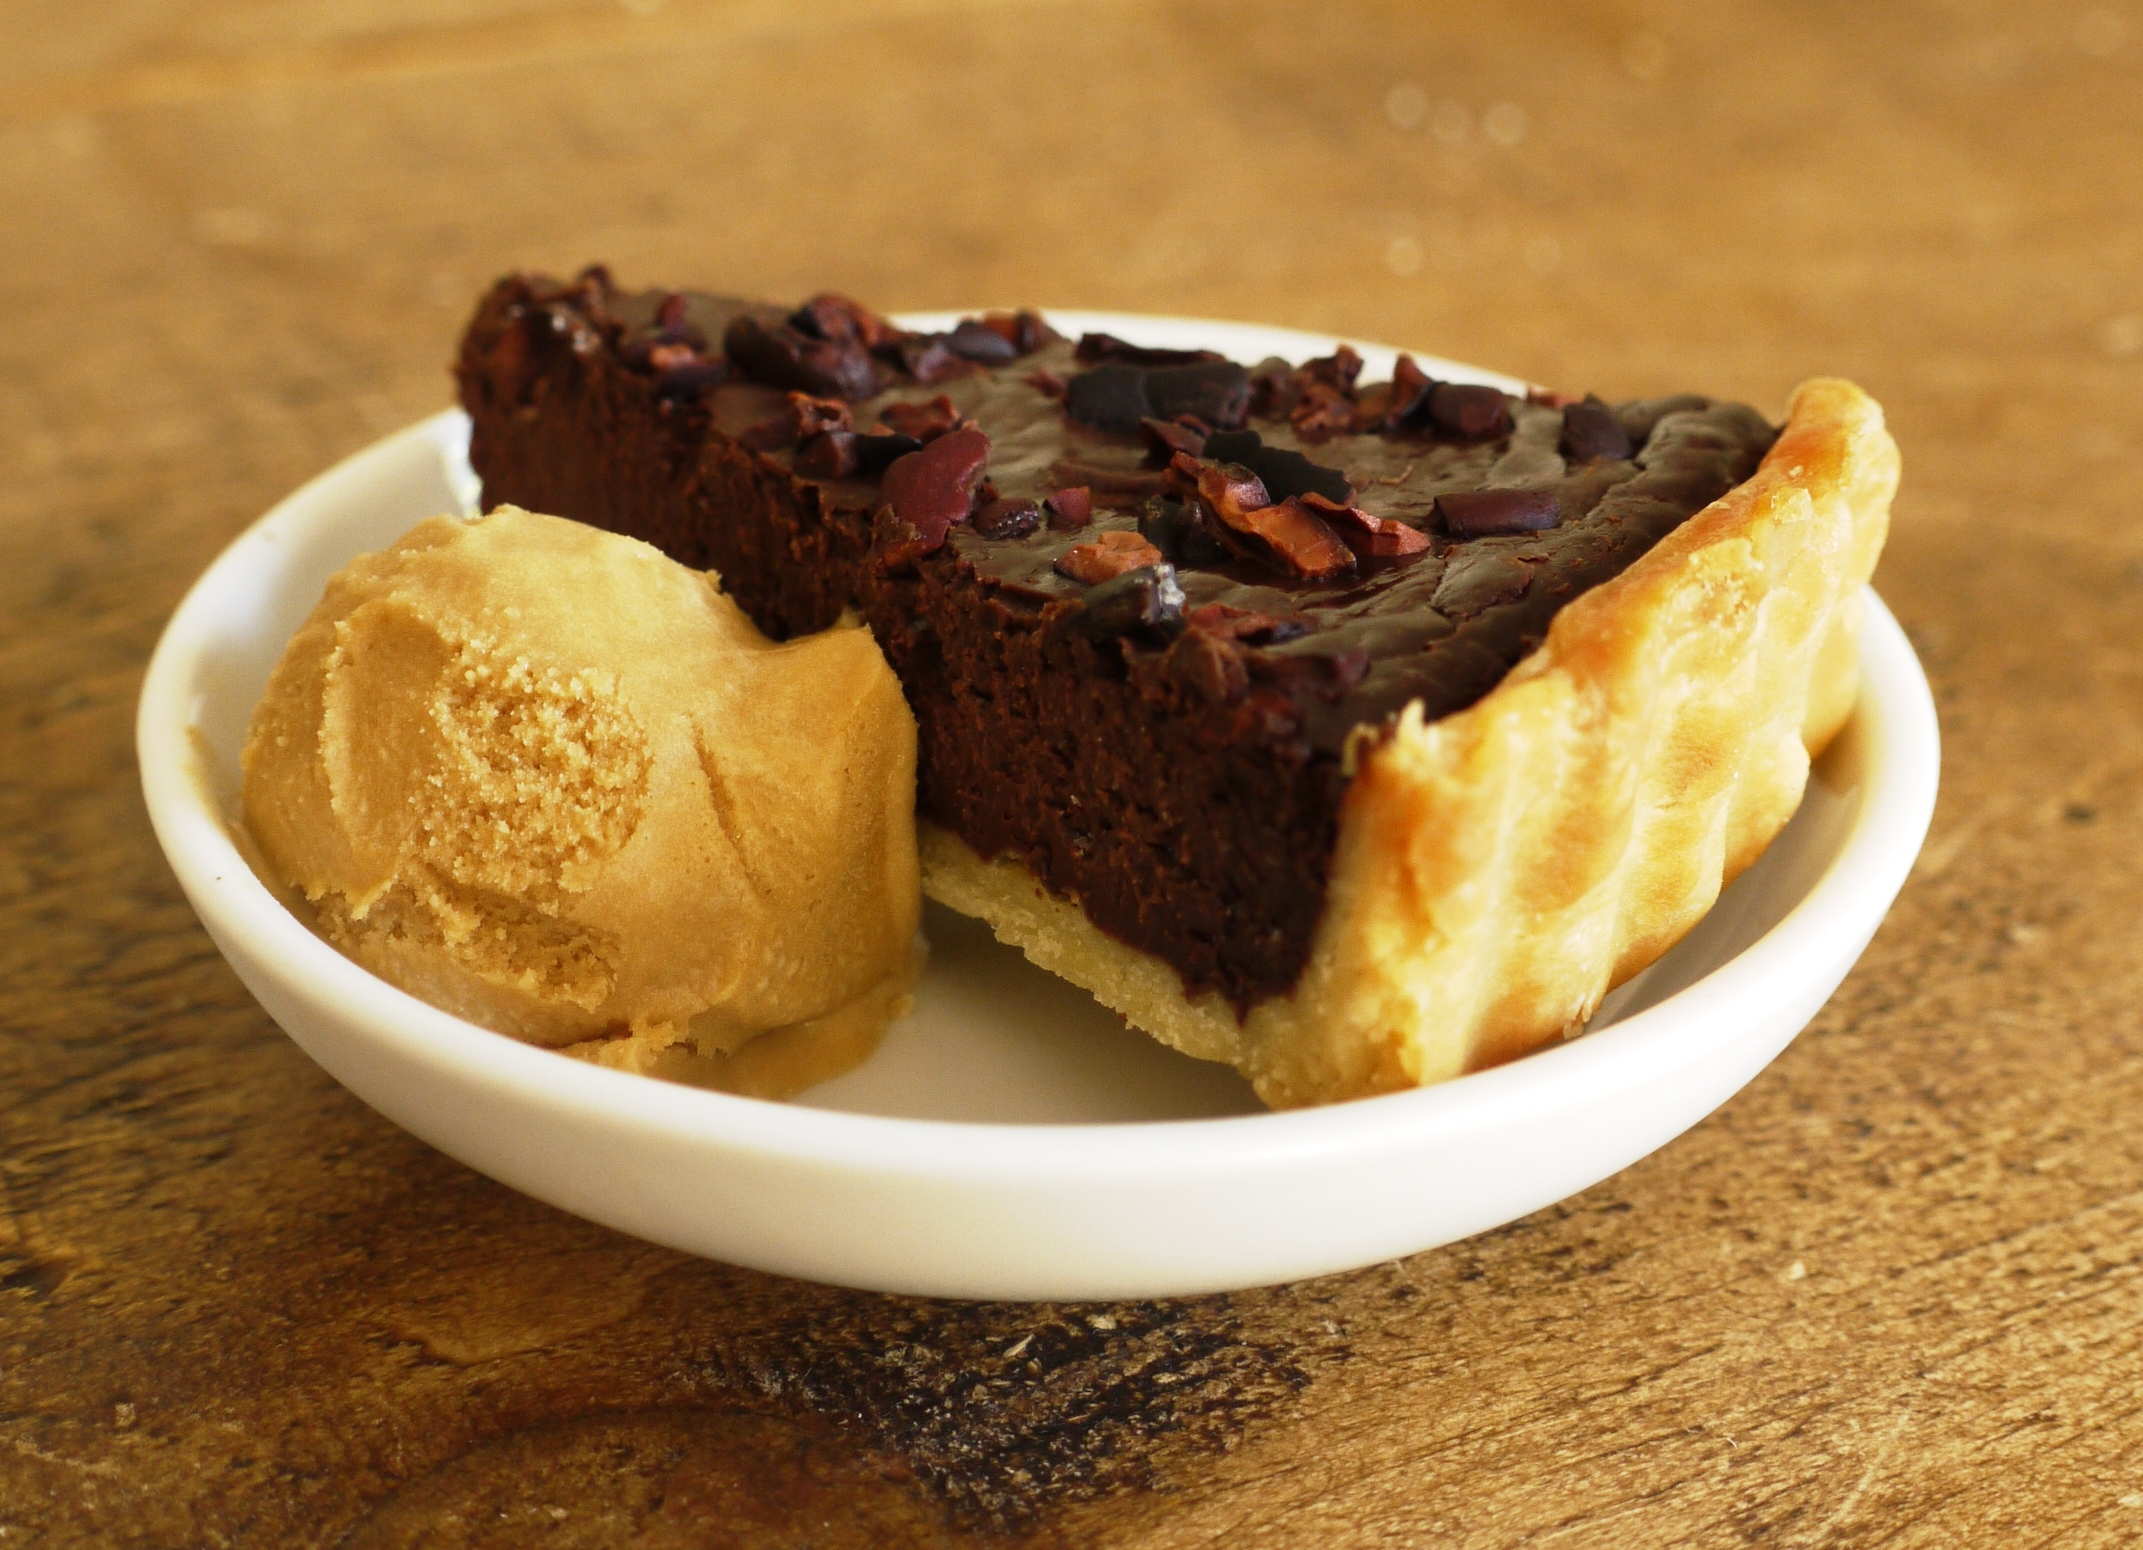 salted_caramel_ice_cream_chocolate_tart